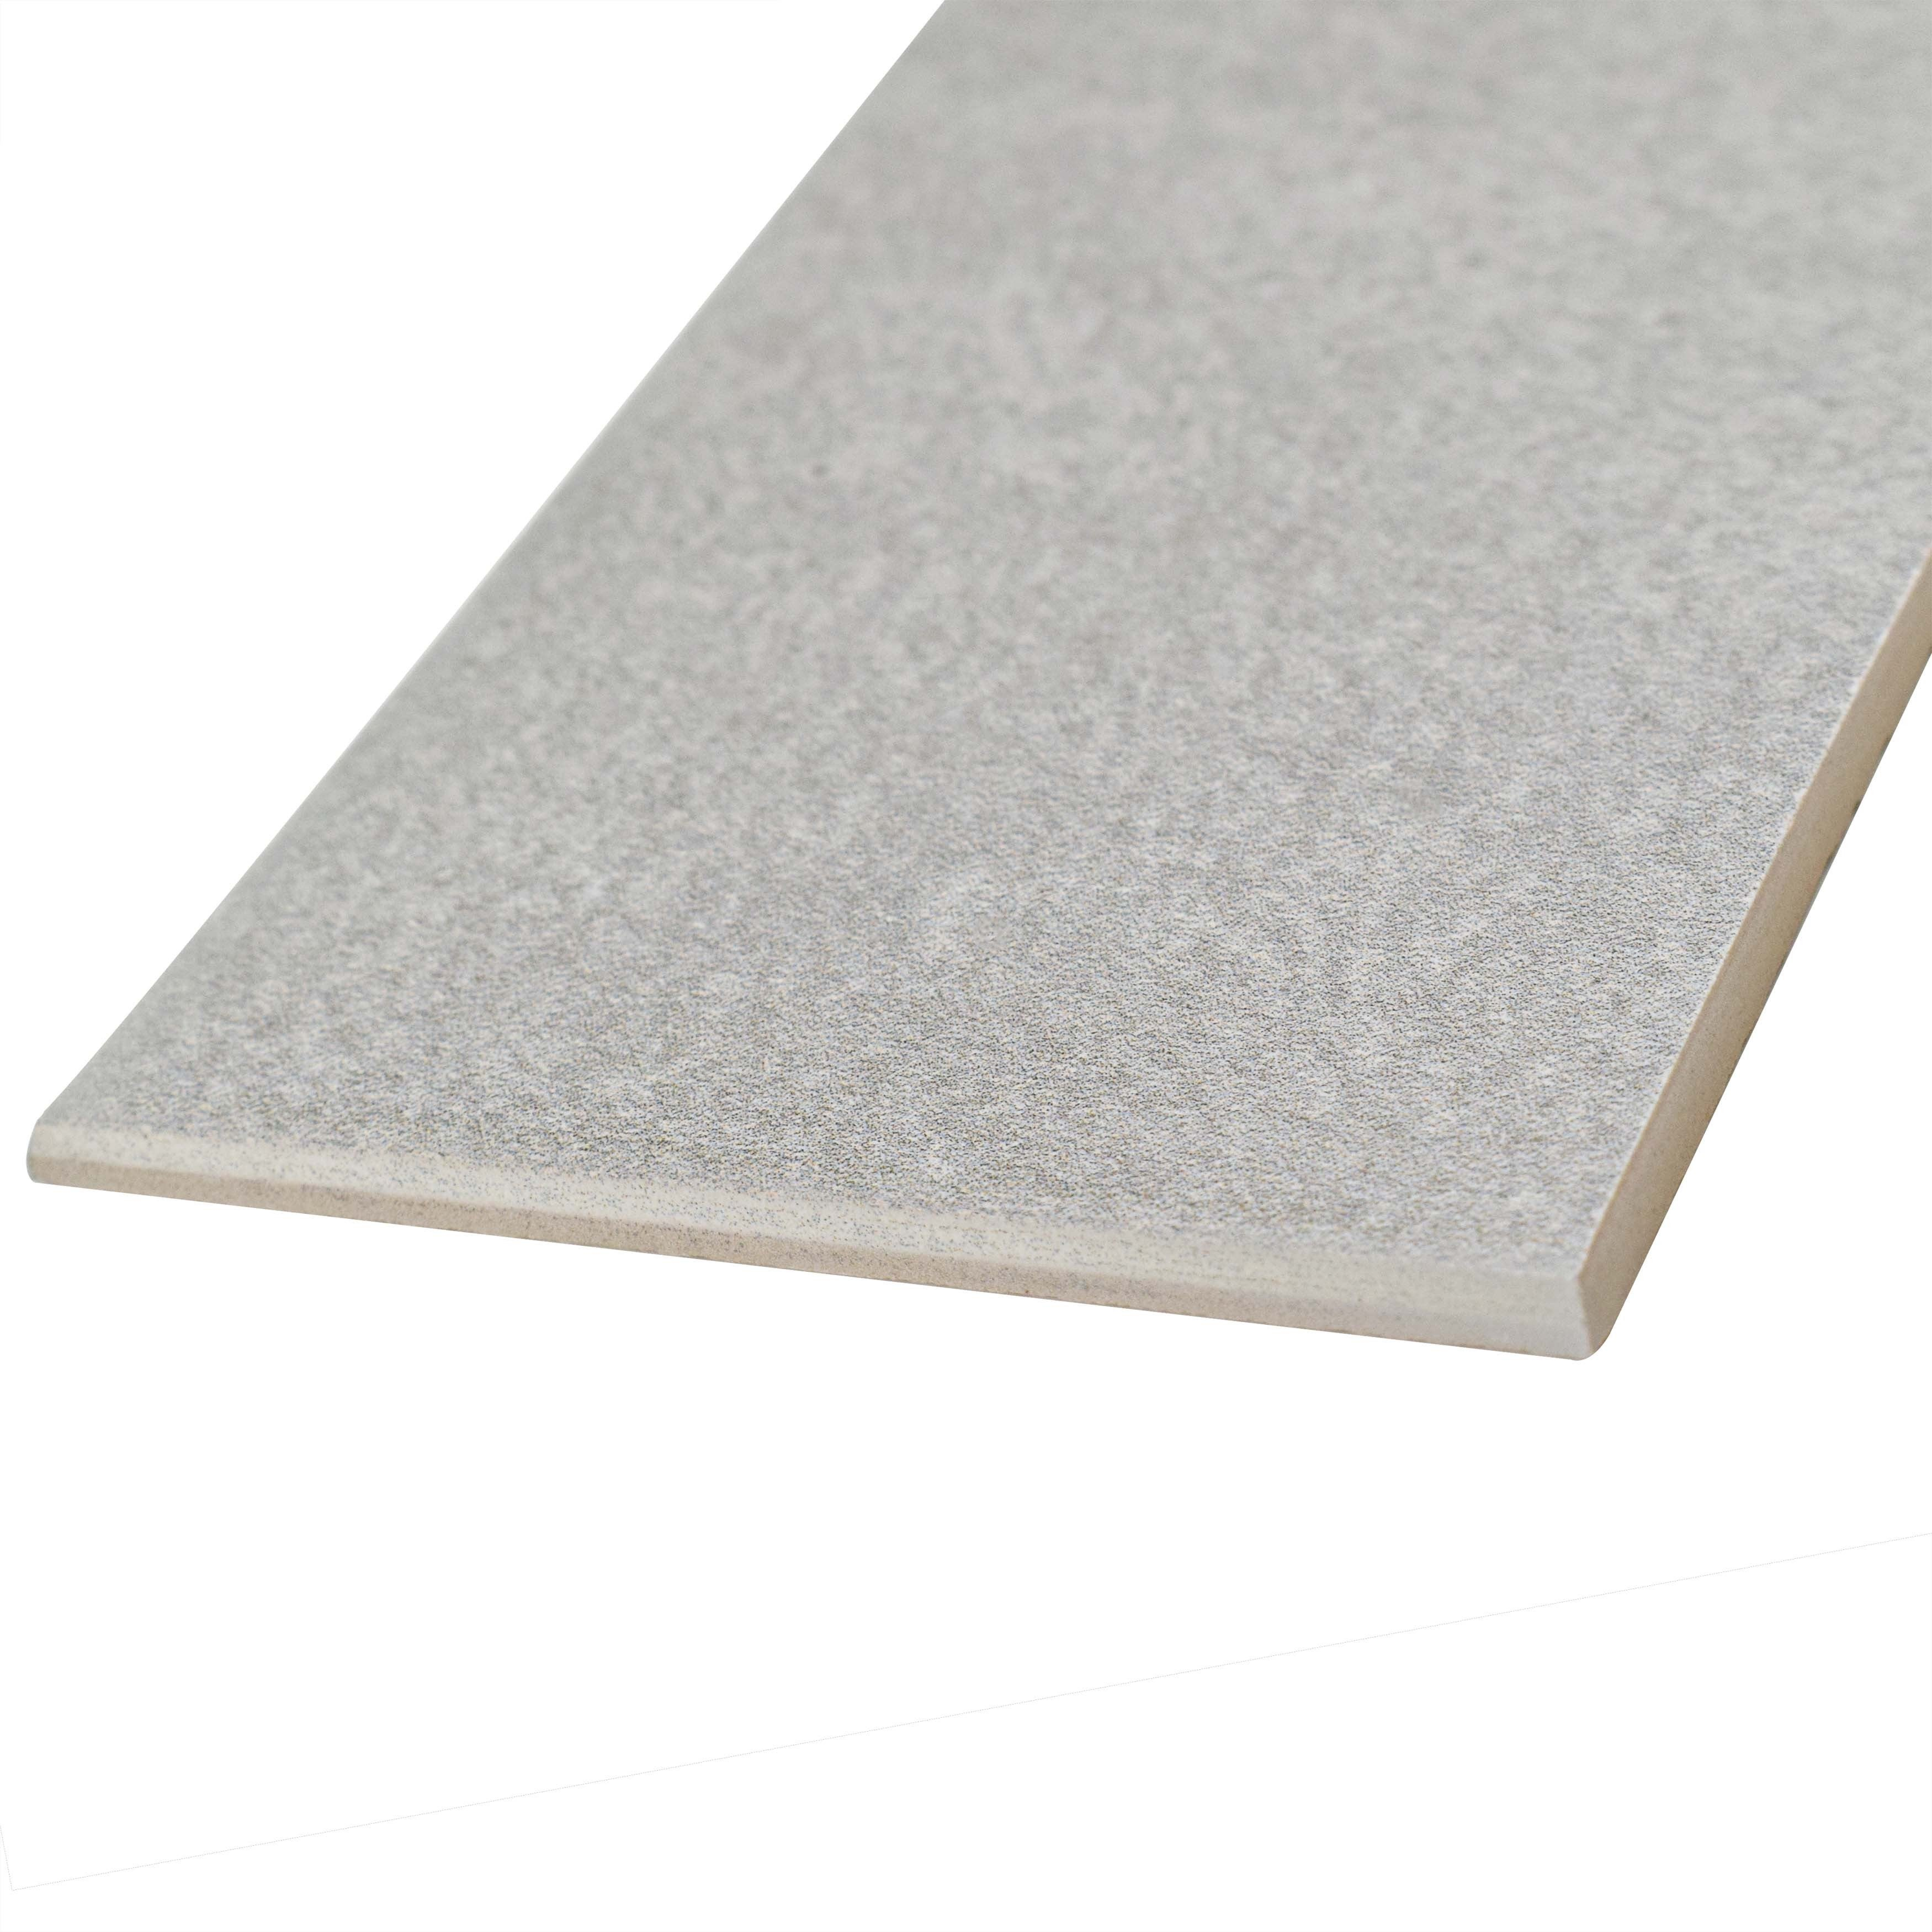 Somertile 35x775 inch thirties grey ceramic bullnose floor and somertile 35x775 inch thirties grey ceramic bullnose floor and wall trim tile 5 tiles free shipping on orders over 45 overstock 21049693 dailygadgetfo Choice Image